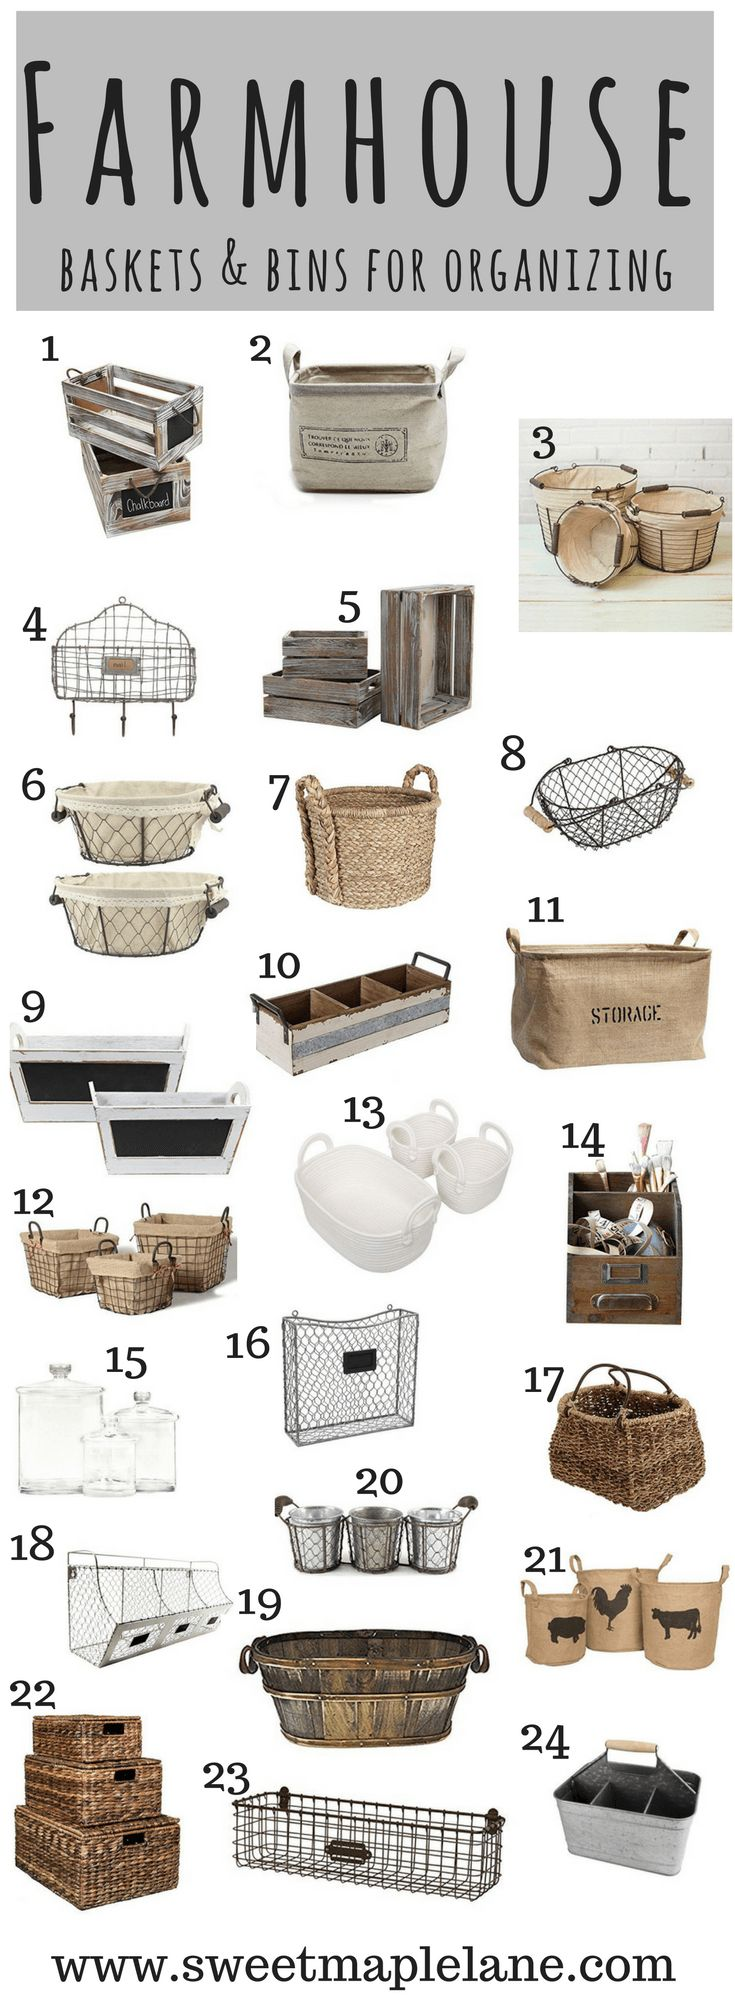 Farmhouse kitchen colors related keywords amp suggestions farmhouse - Rustic Farmhouse Baskets And Bins For Organizing